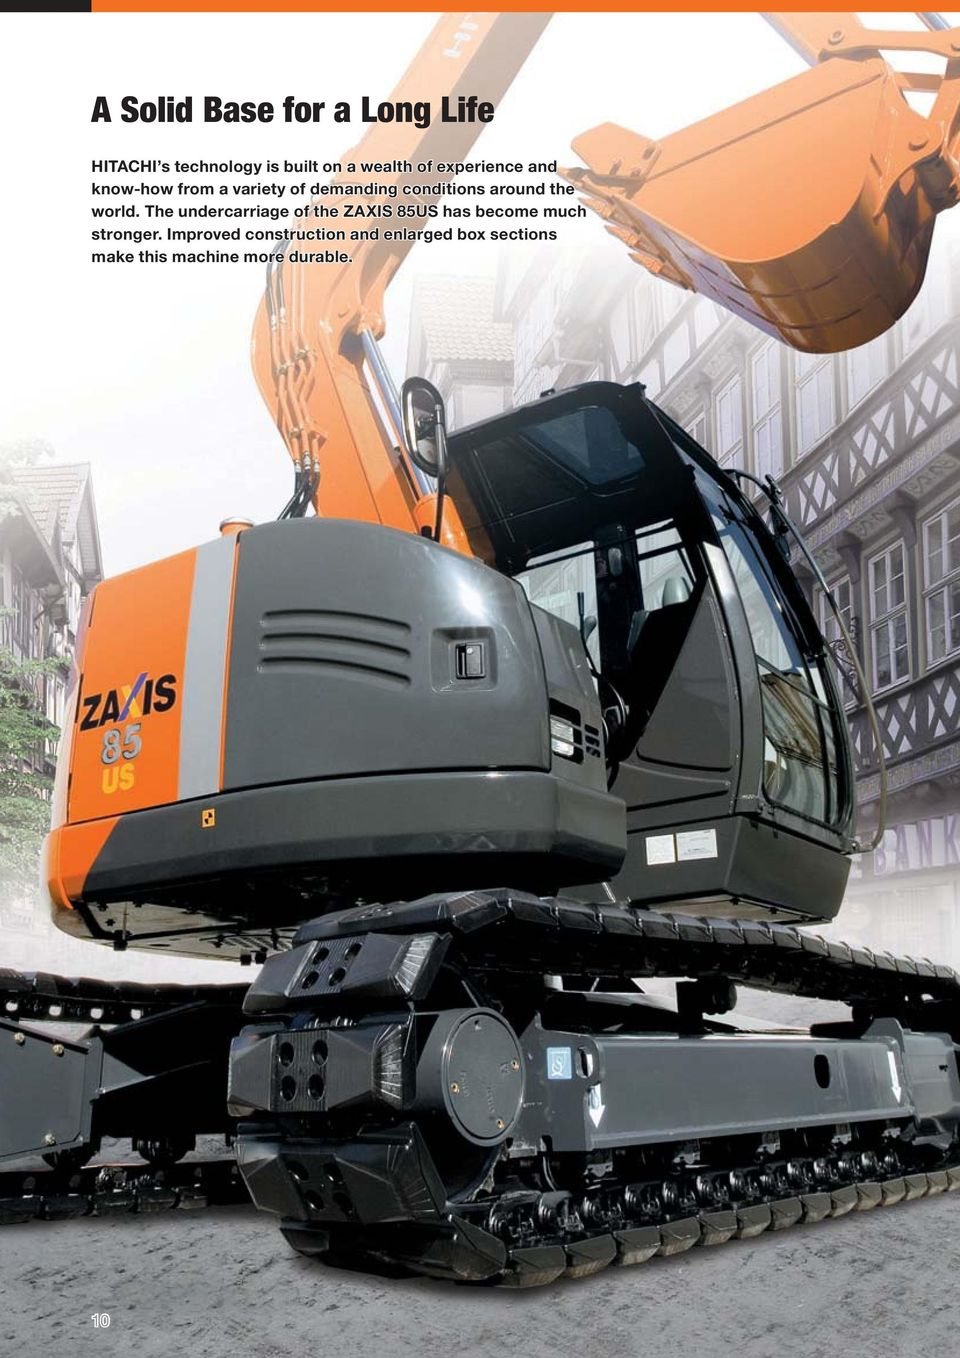 world. The undercarriage of the ZAXIS 85US has become much stronger.